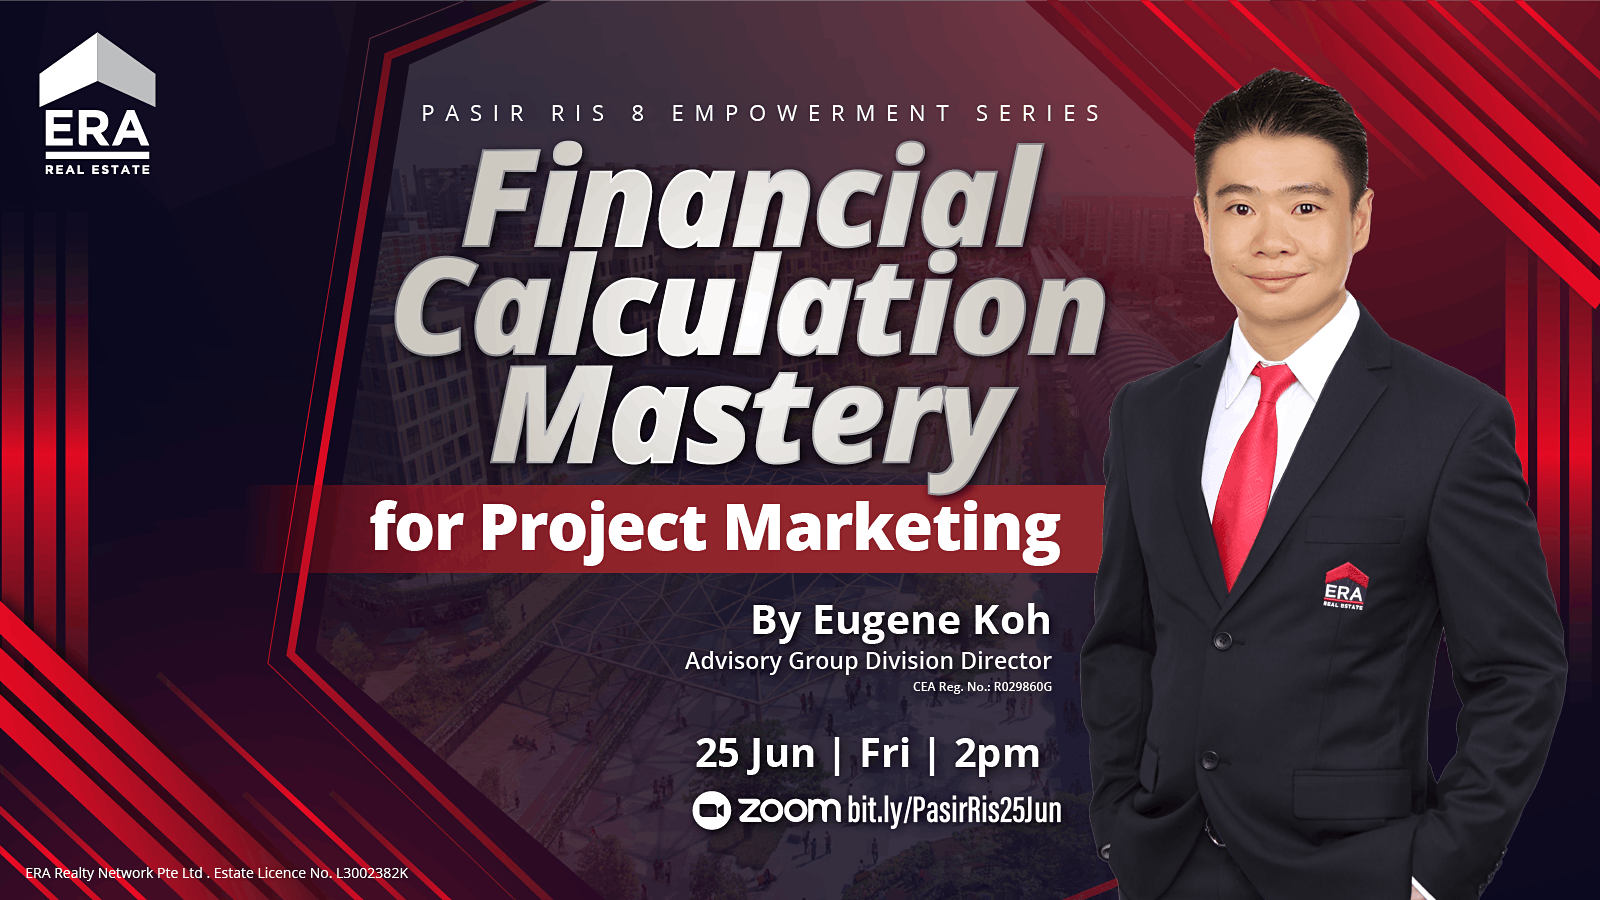 Financial Calculation Mastery for Project Marketing (Pasir Ris 8)